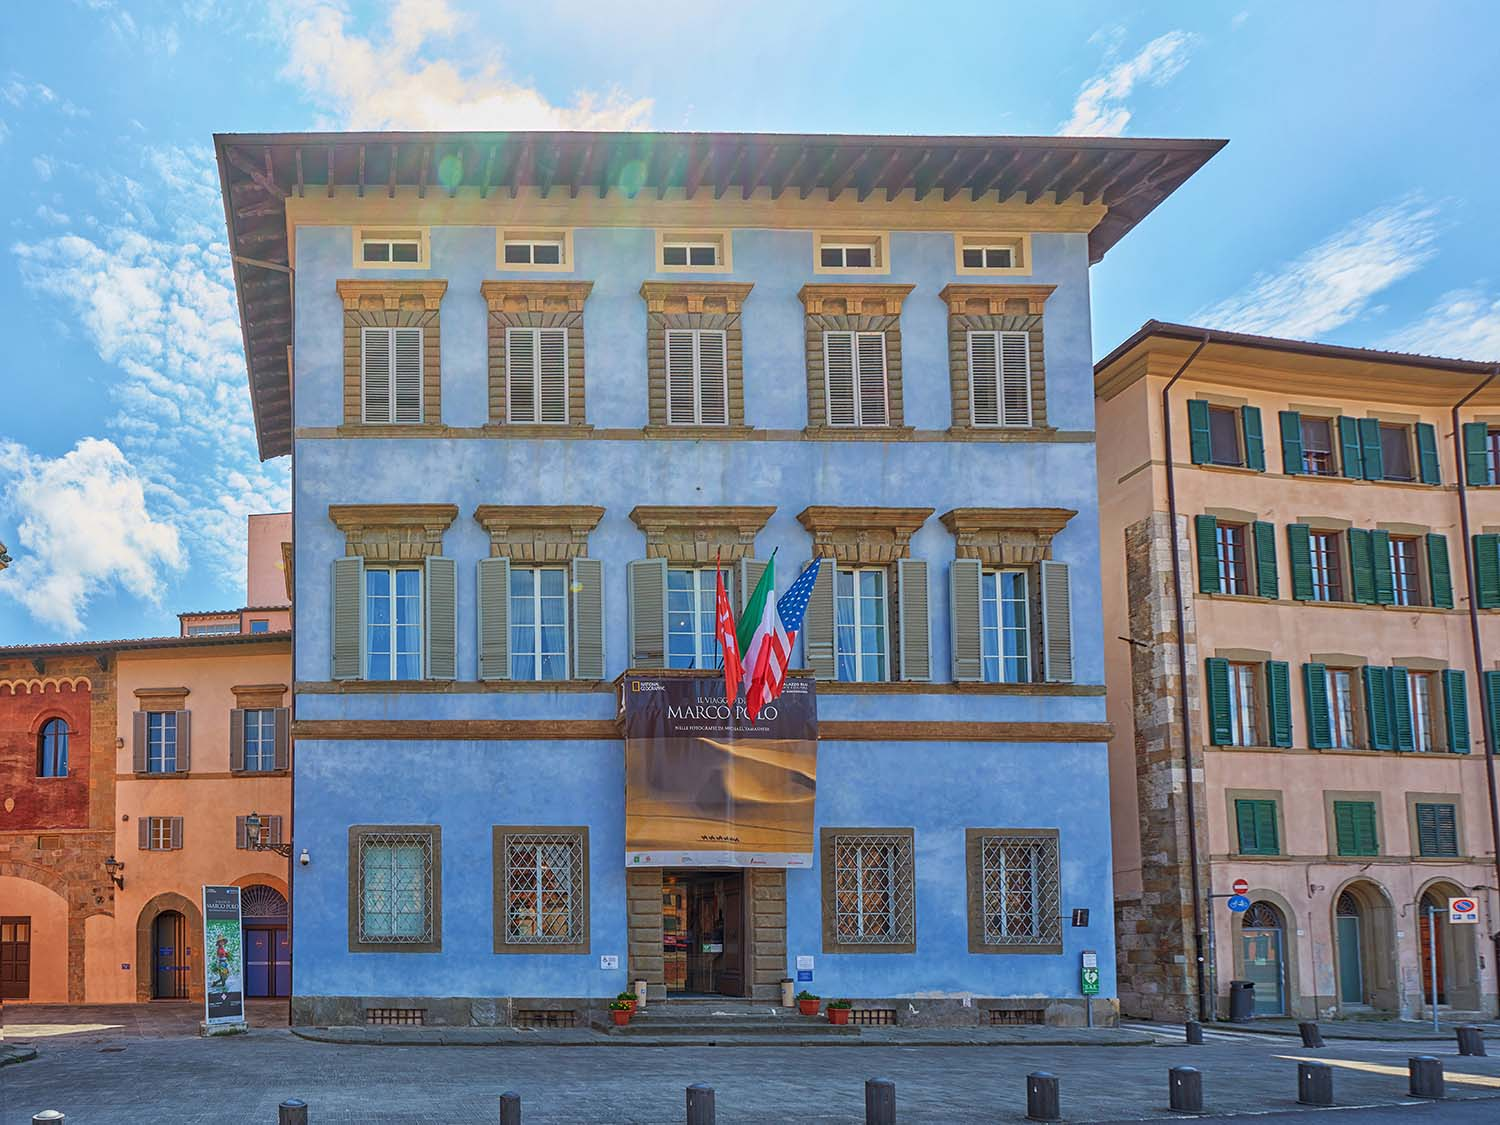 Palazzo Blu is a center for temporary exhibitions and cultural activities in Pisa Italy